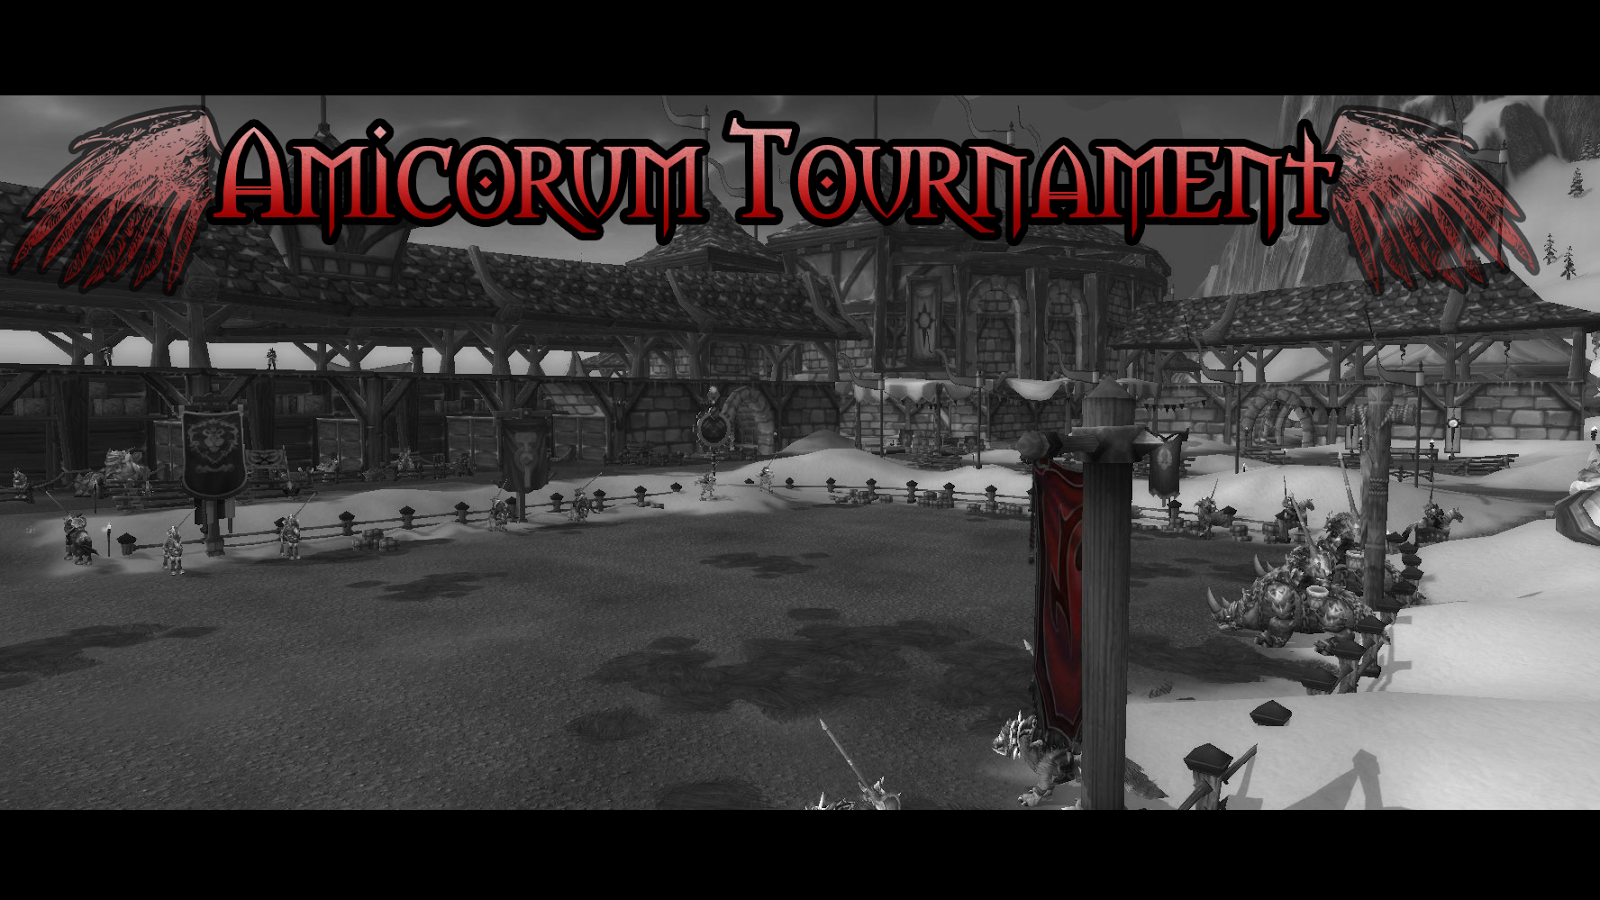 Amicorum Tournament